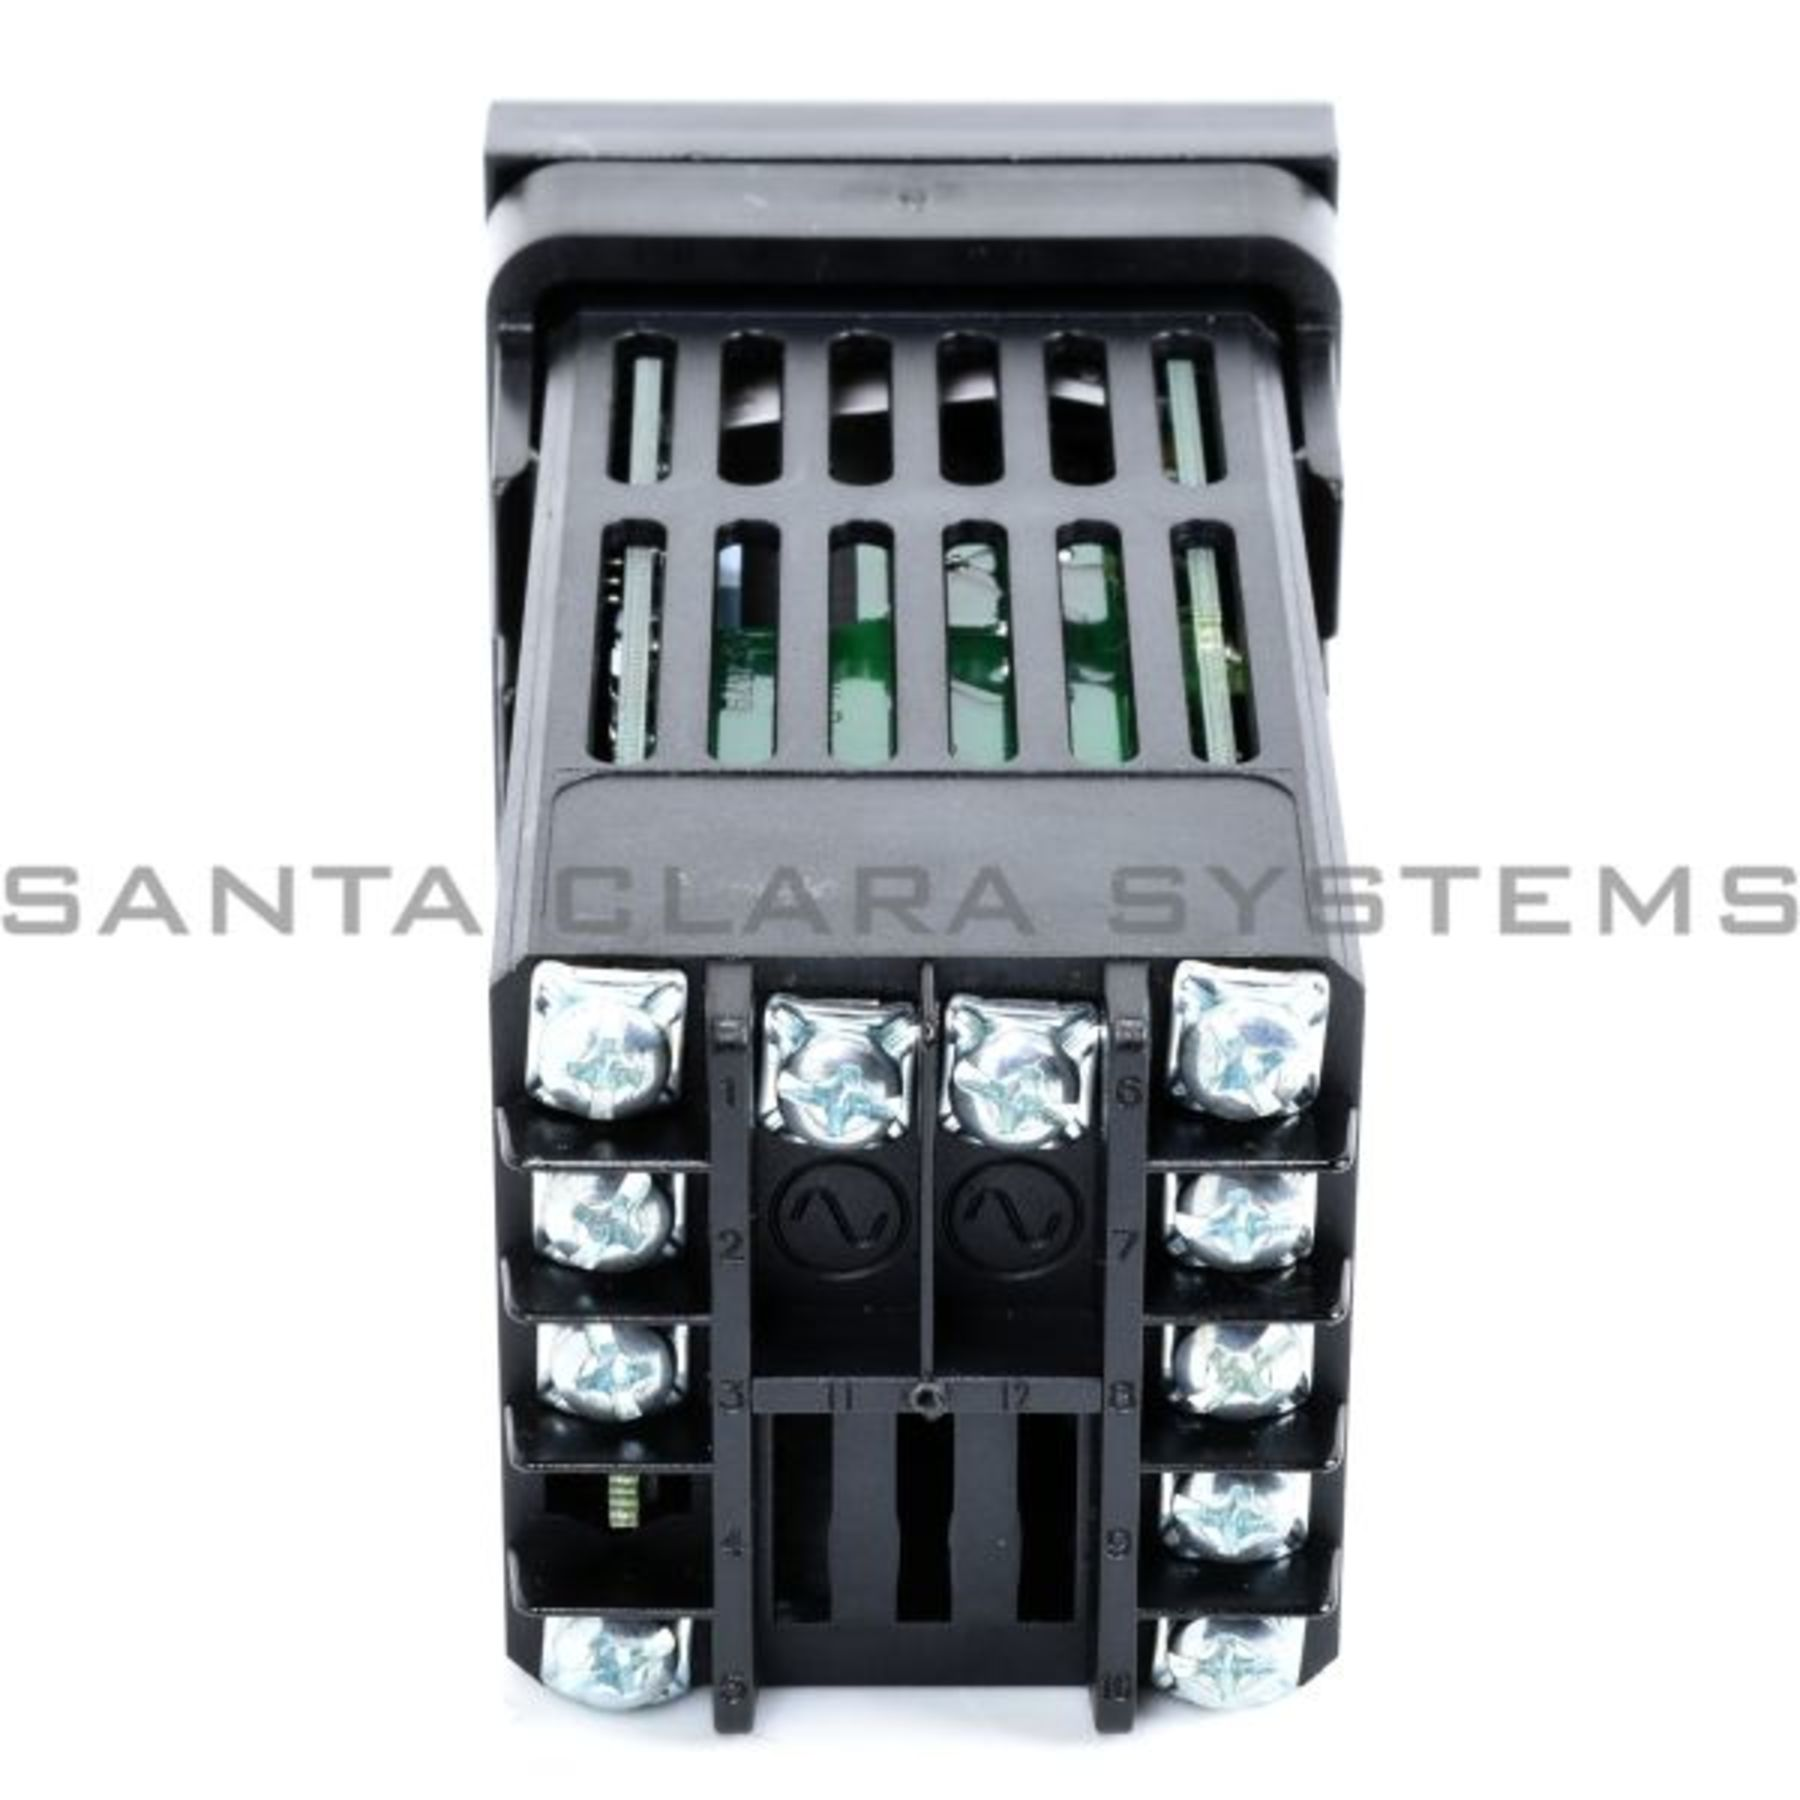 965A-3FA0-0000 Watlow In stock and ready to ship - Santa